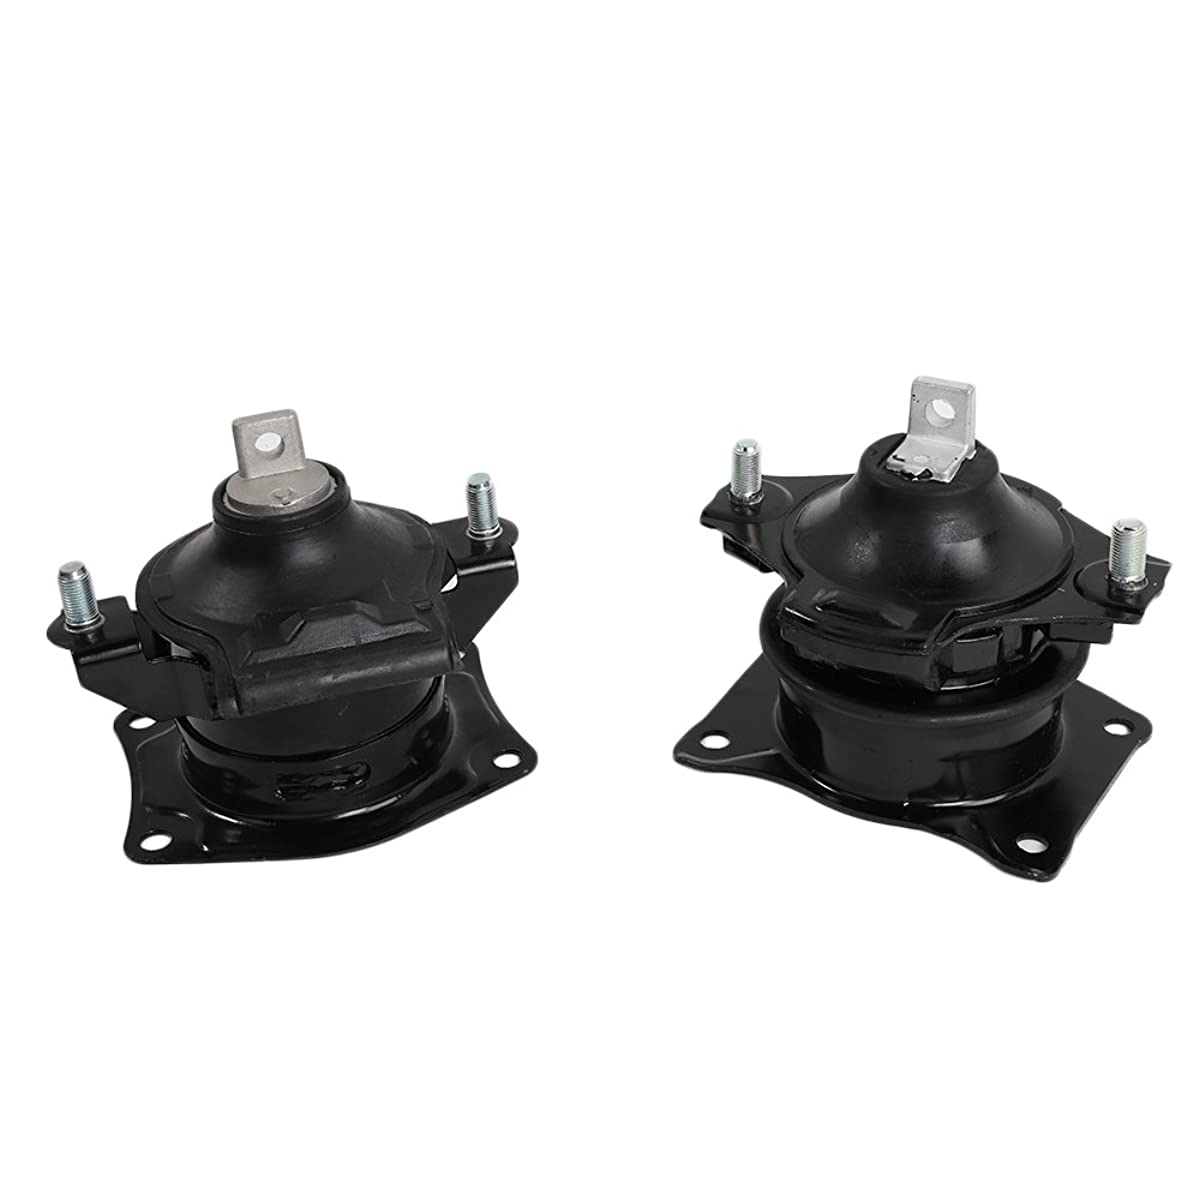 Front & Rear Motor Mount Set of 2 for 2004-2008 Acura RL Compatible with A4526HY A4599HY